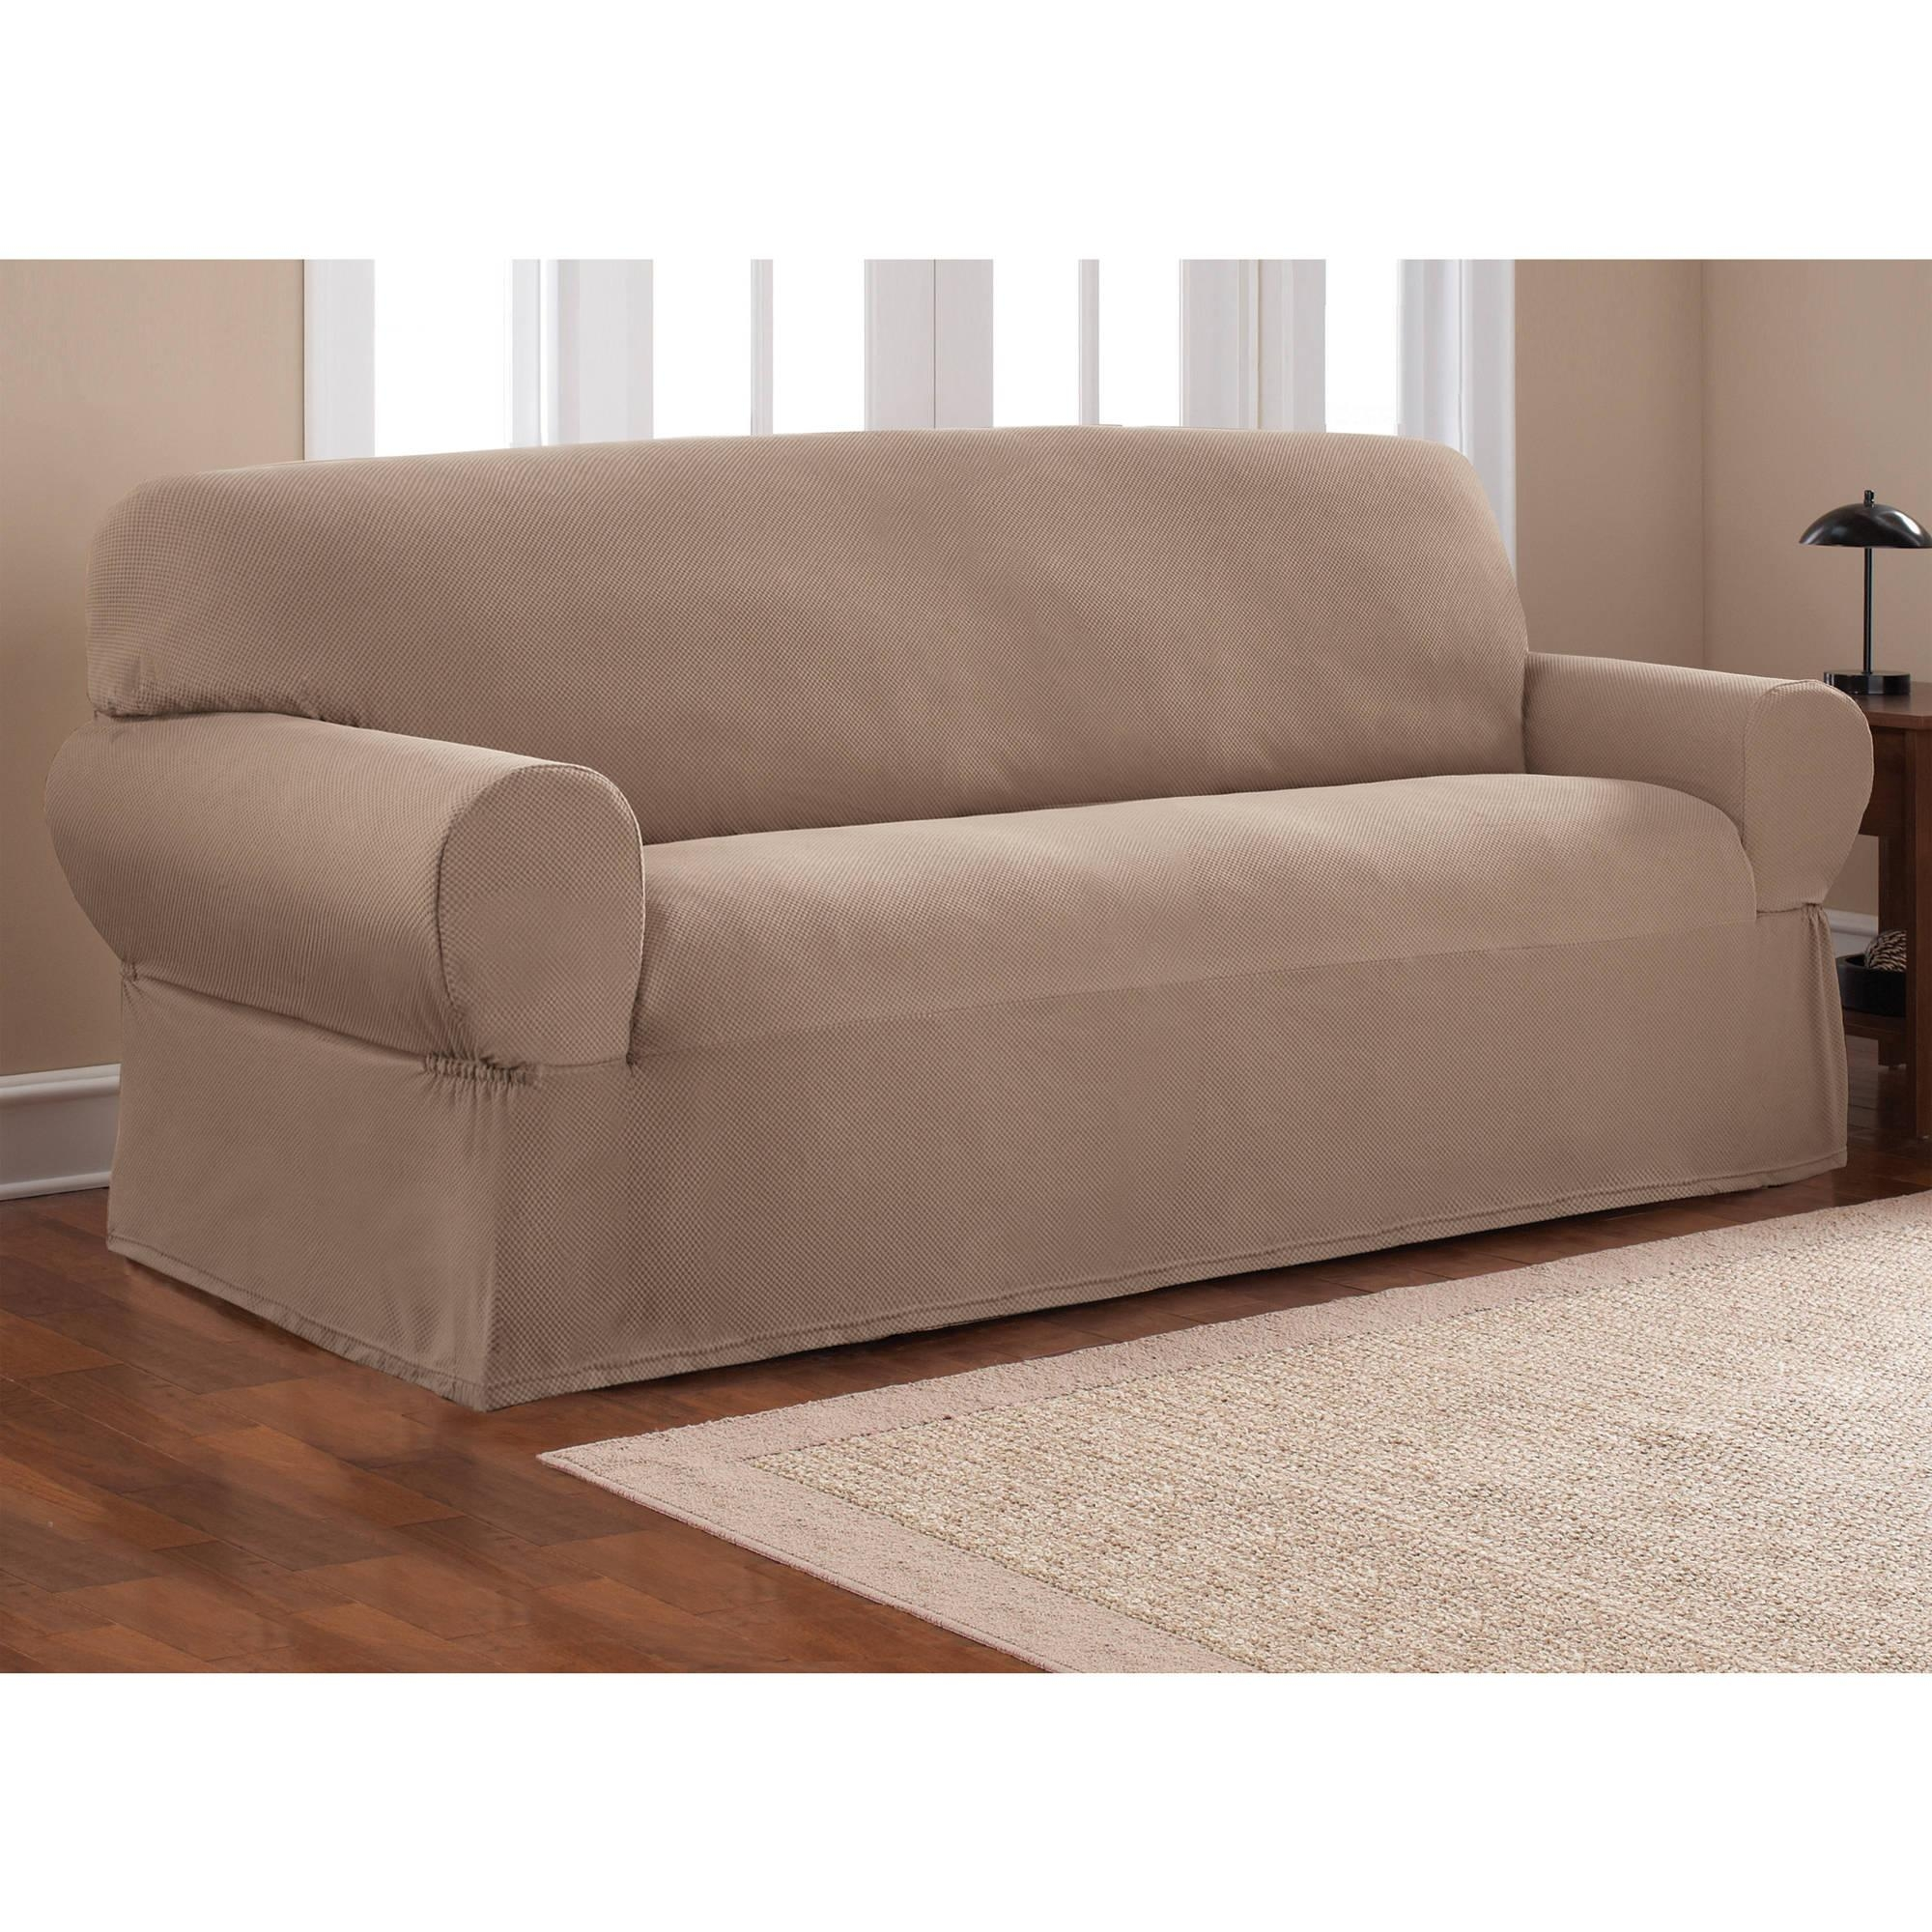 Mainstays 1 Piece Stretch Fabric Sofa Slipcover – Walmart Throughout Patterned Sofa Slipcovers (Image 8 of 20)